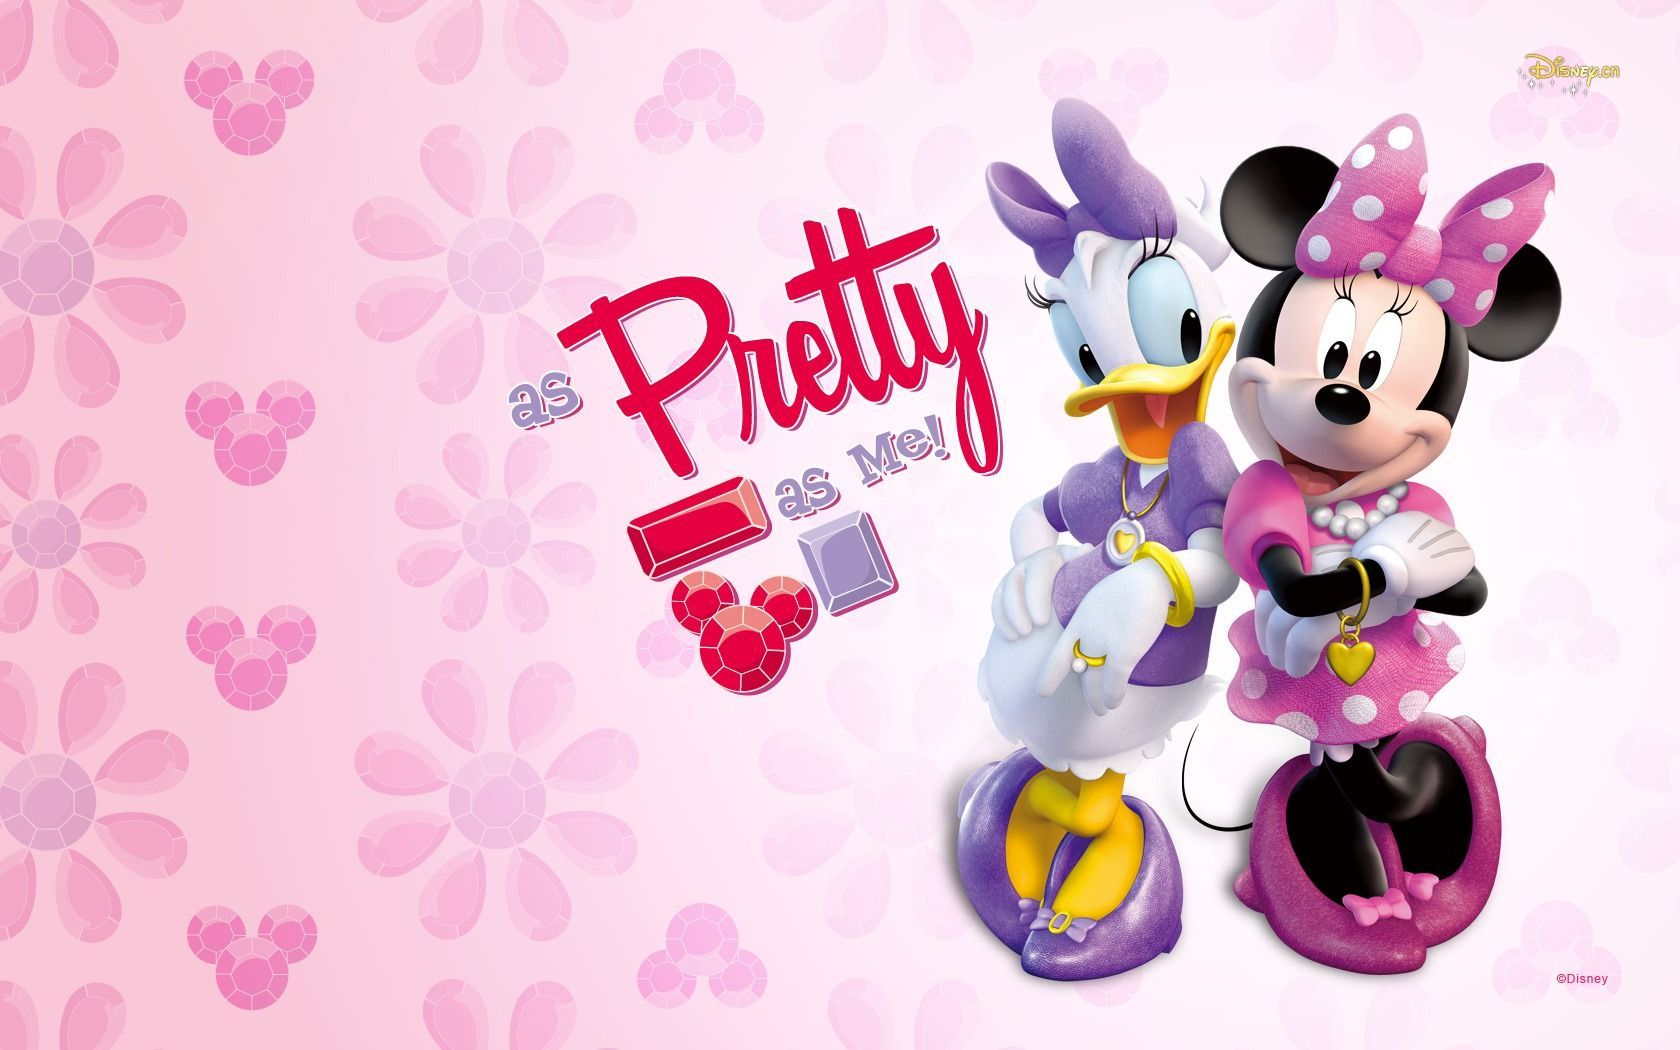 Mickey Mouse Wallpapers HD Backgrounds, Images, Pics